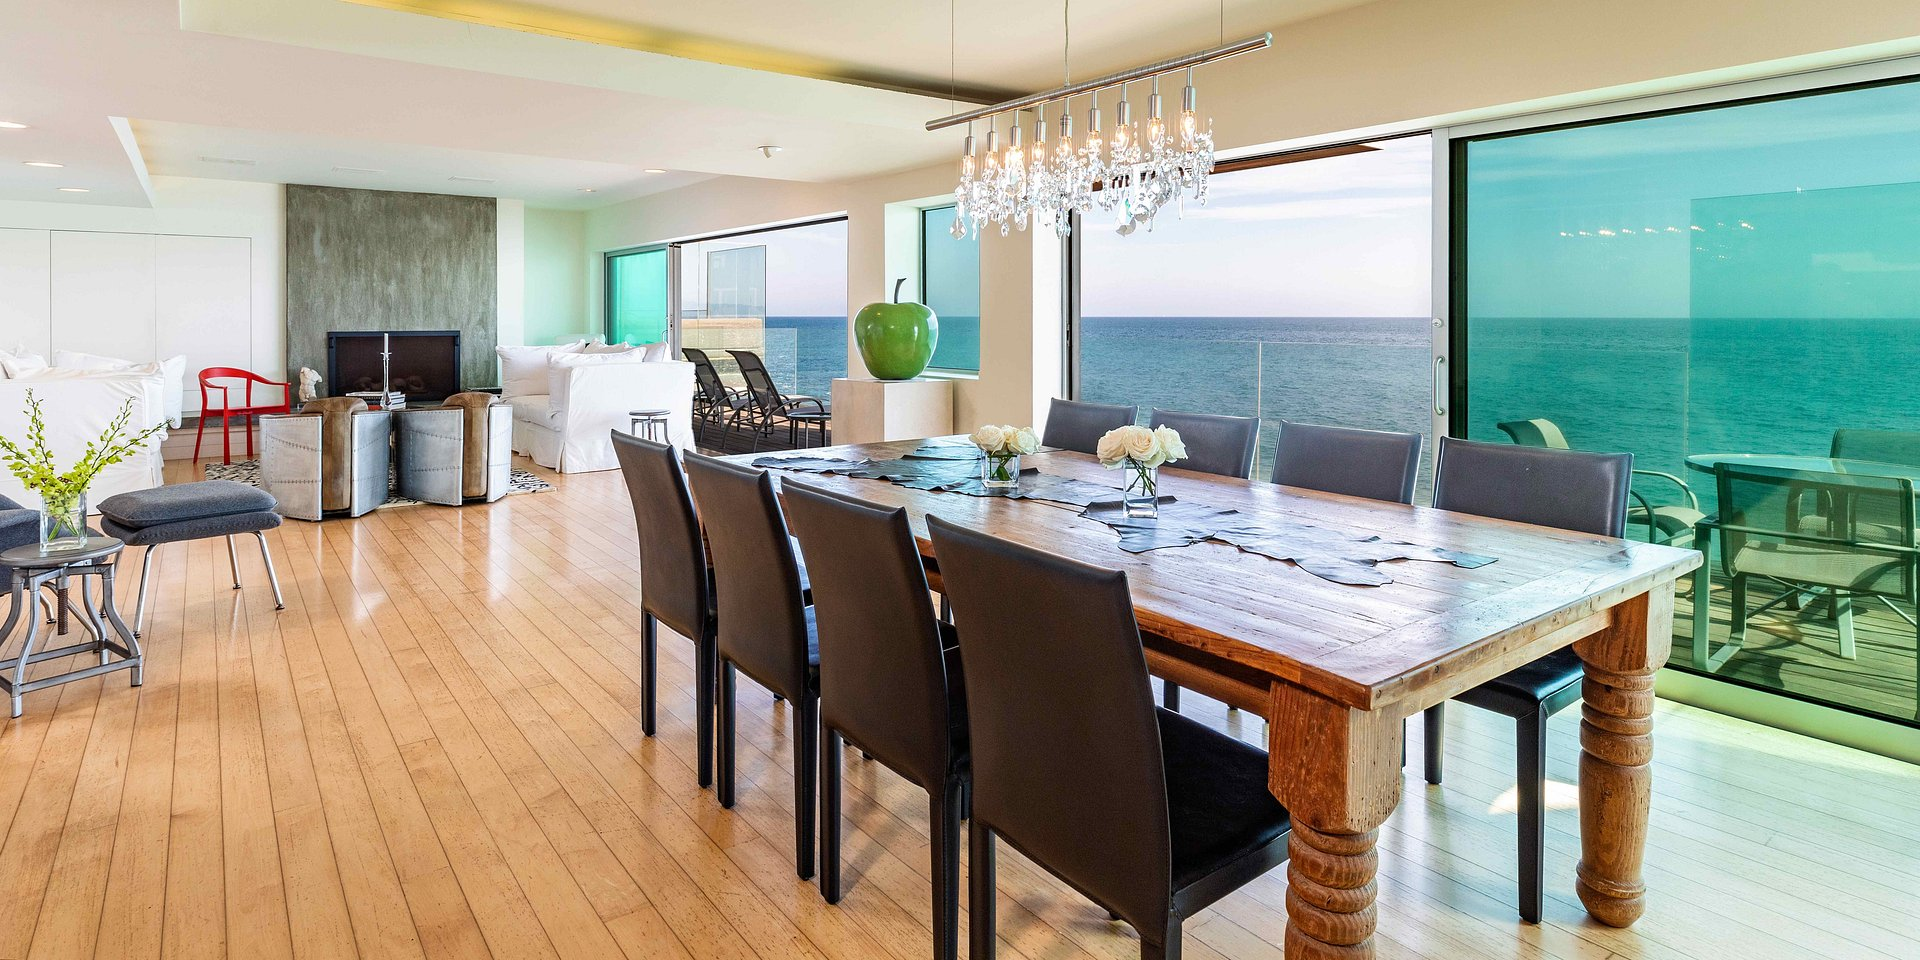 Coldwell Banker Residential Brokerage Lists Oceanfront Malibu Property for $8.995 Million